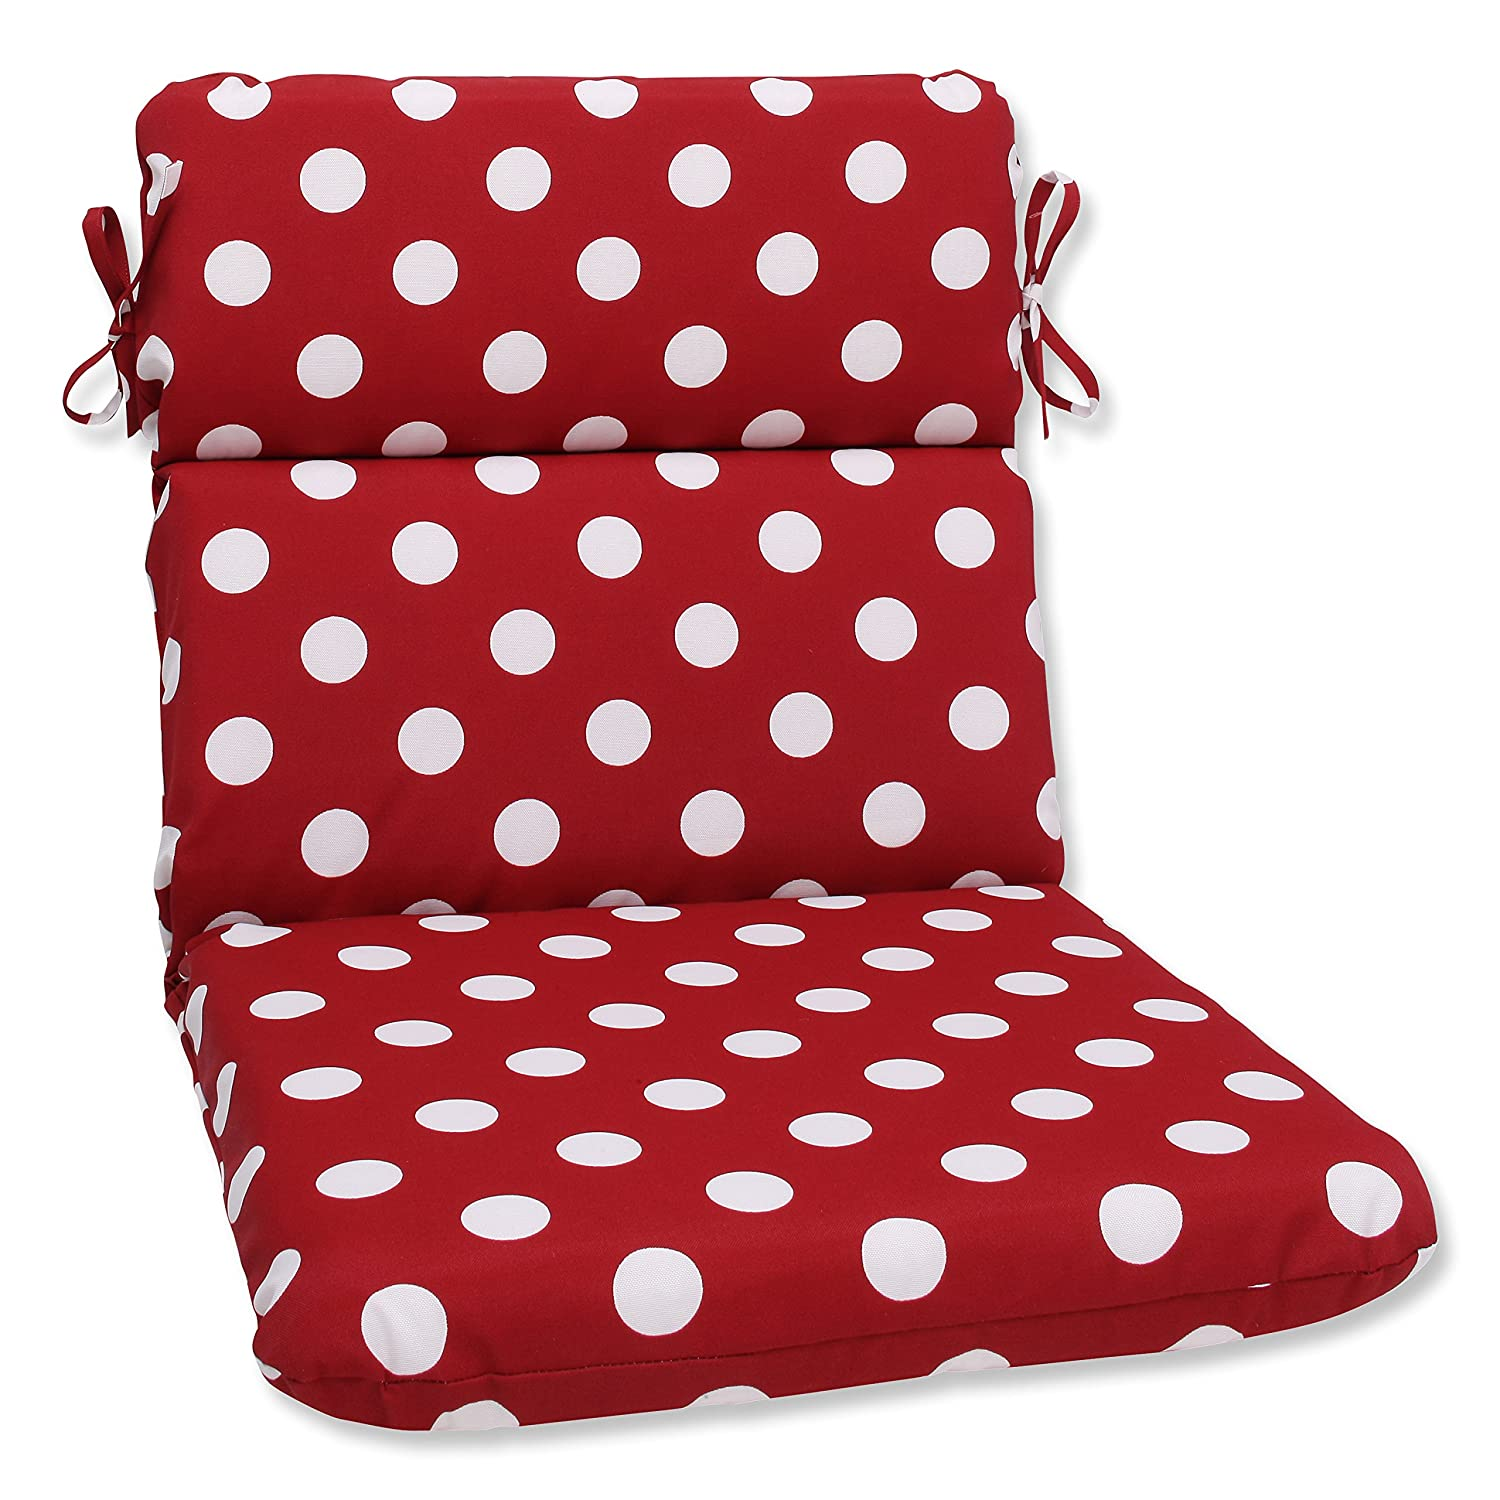 Pillow Perfect Indoor Outdoor Red White Polka Dot Chair Cushion, Rounded